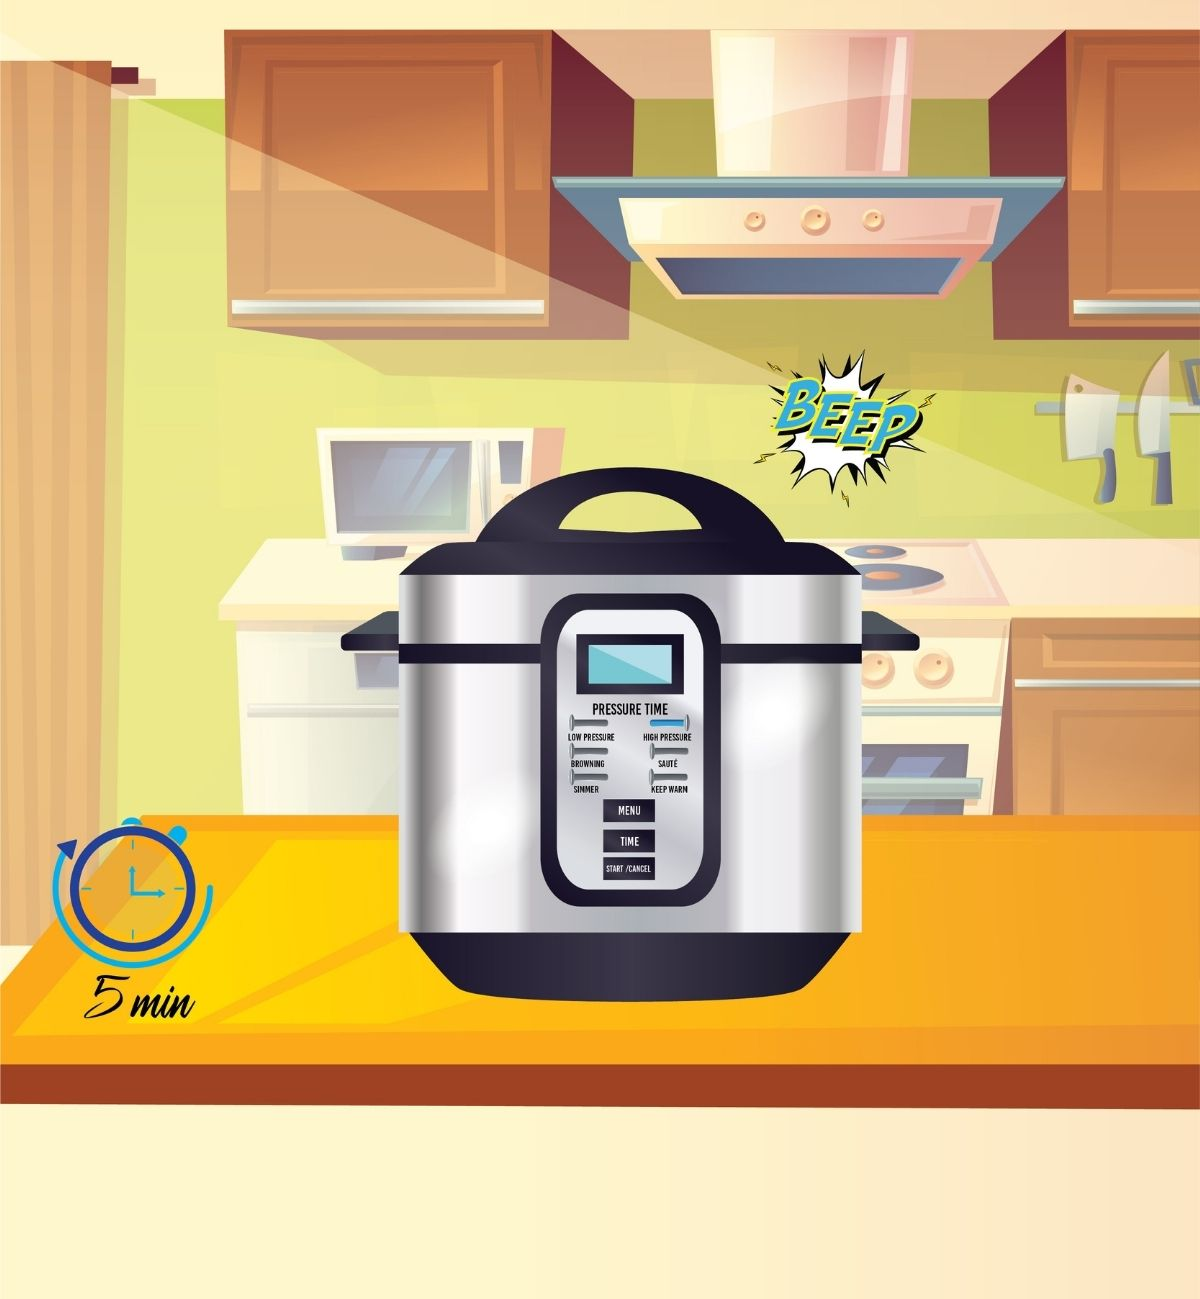 When beep sounds turn the pressure cooker off, wait 5 minutes